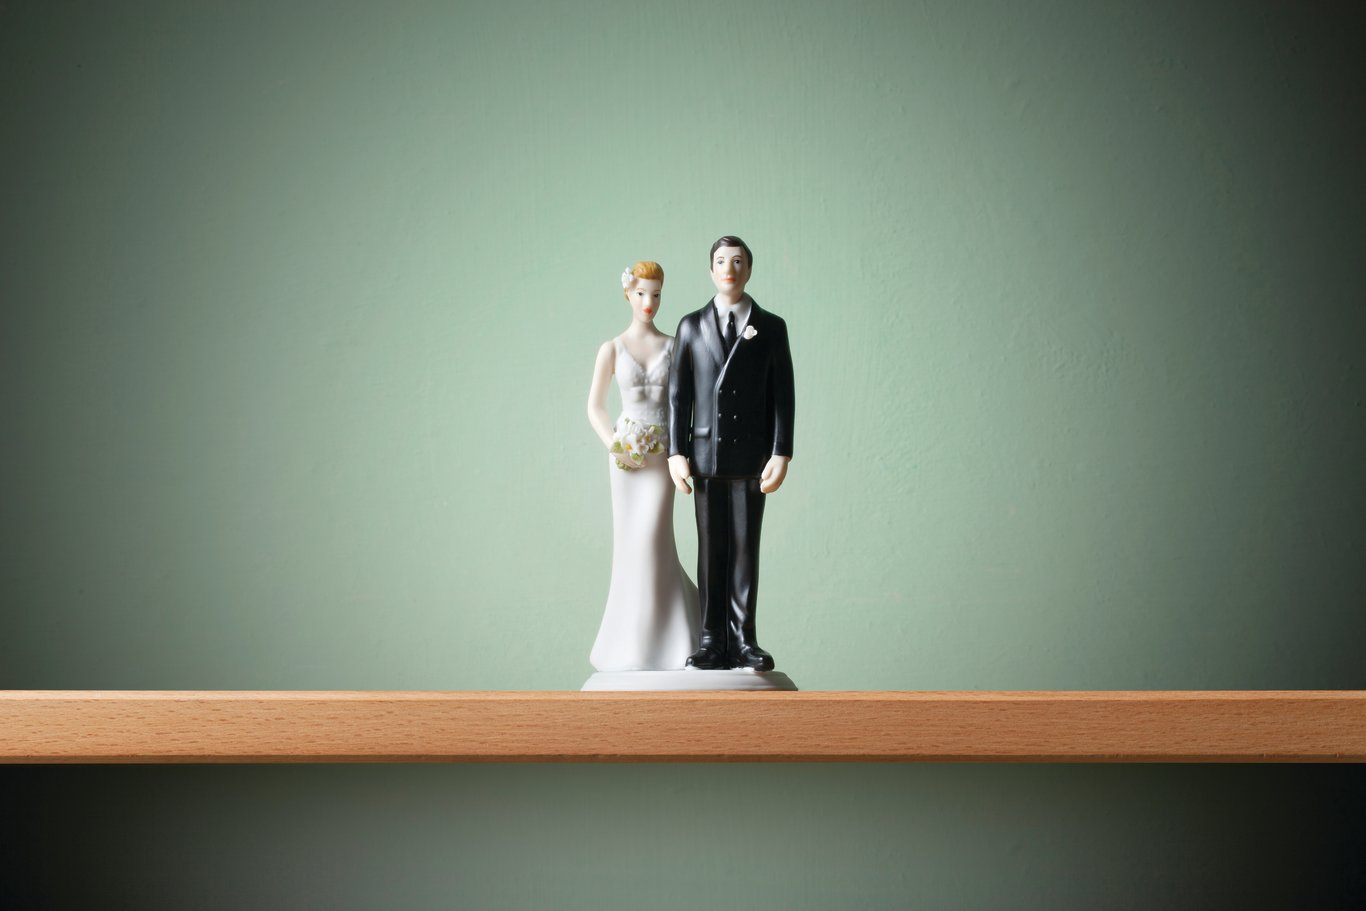 The non-romantic effect of marriage, legal or de facto cohabitation: what is the difference in terms of inheritance?